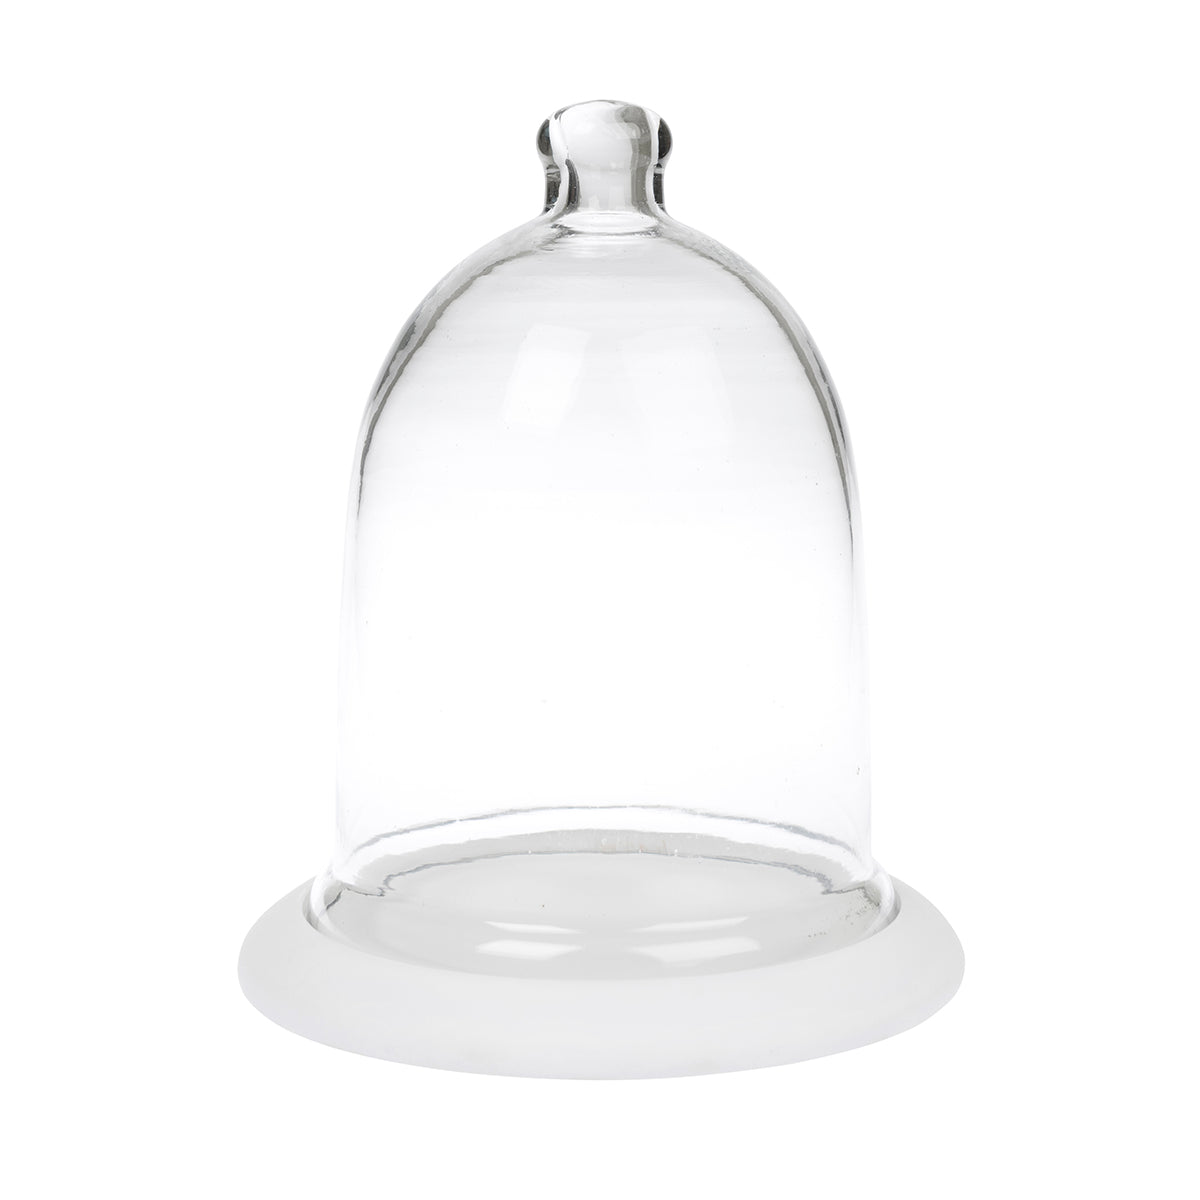 Glass Cloche Display Dome